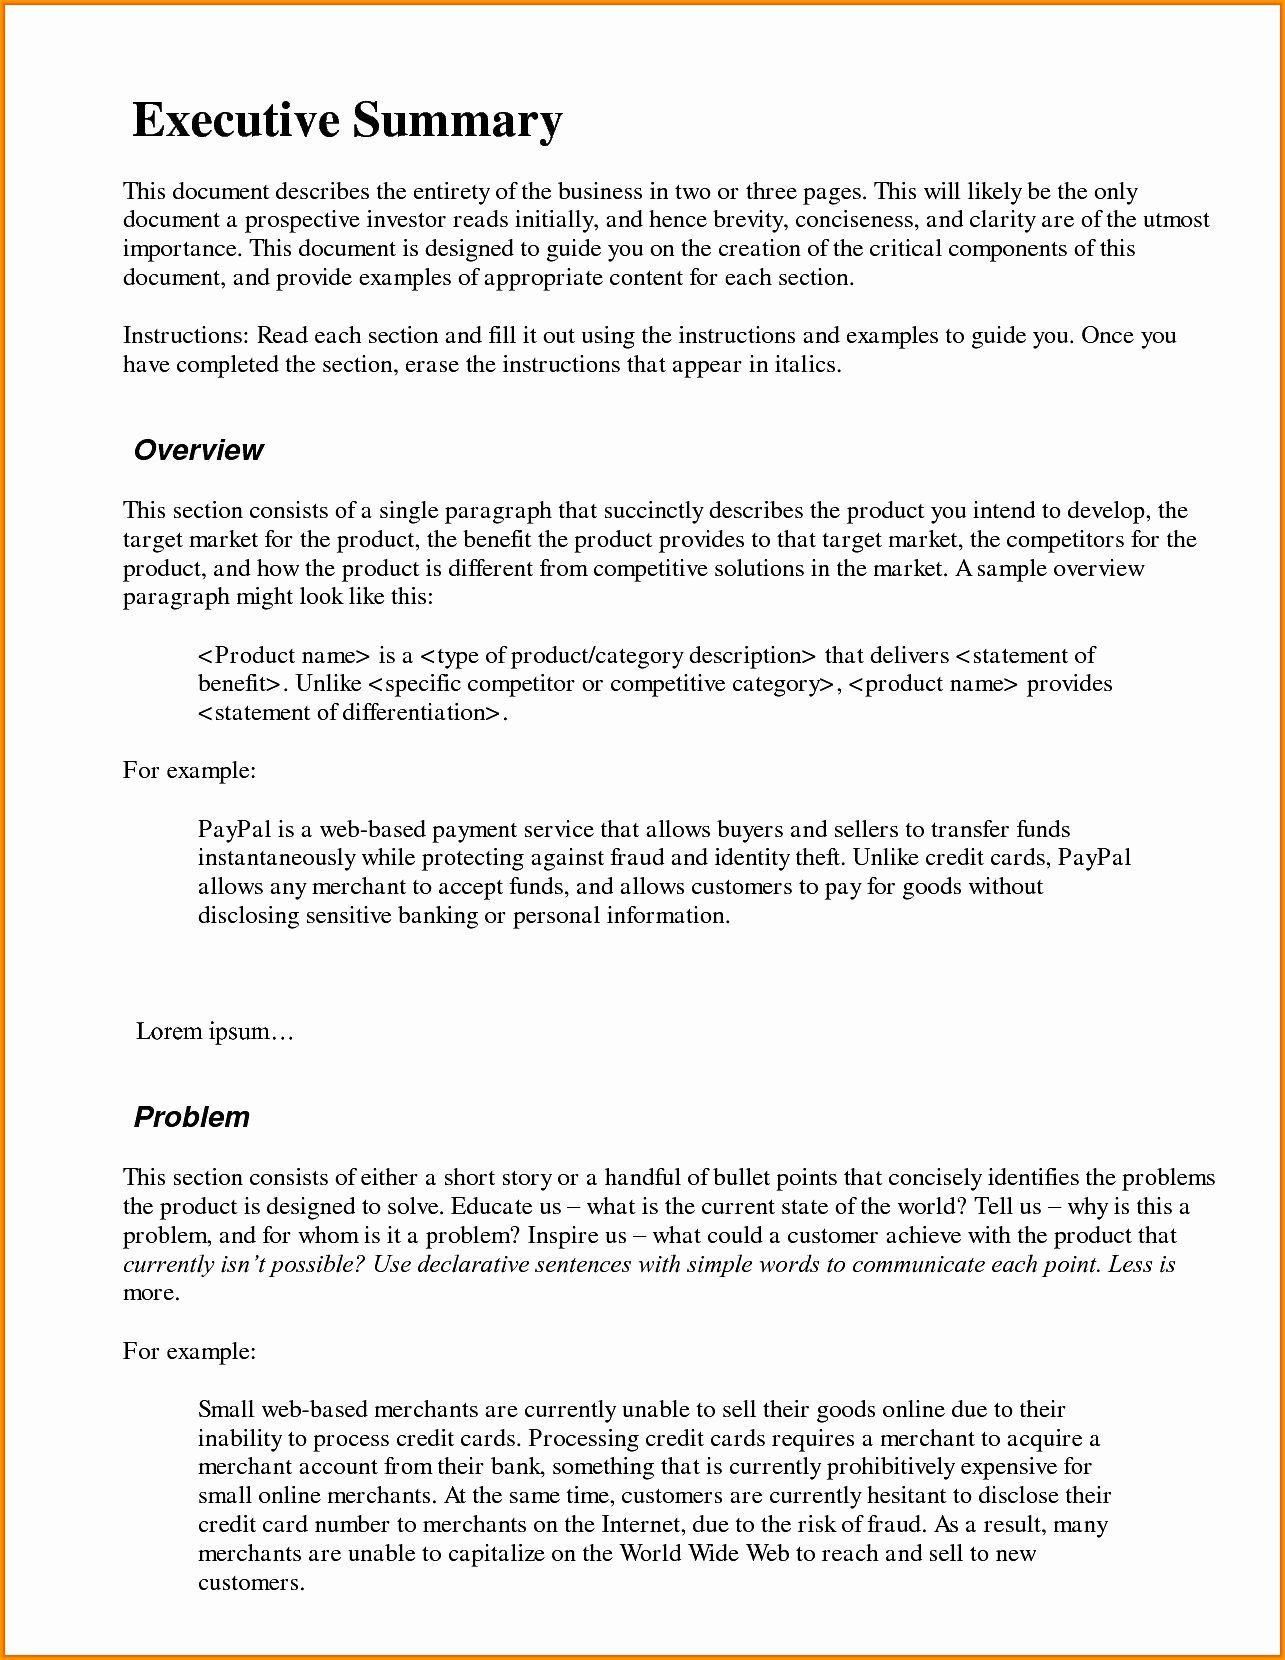 003 Phenomenal Executive Summary Word Template Free Download High Def Full